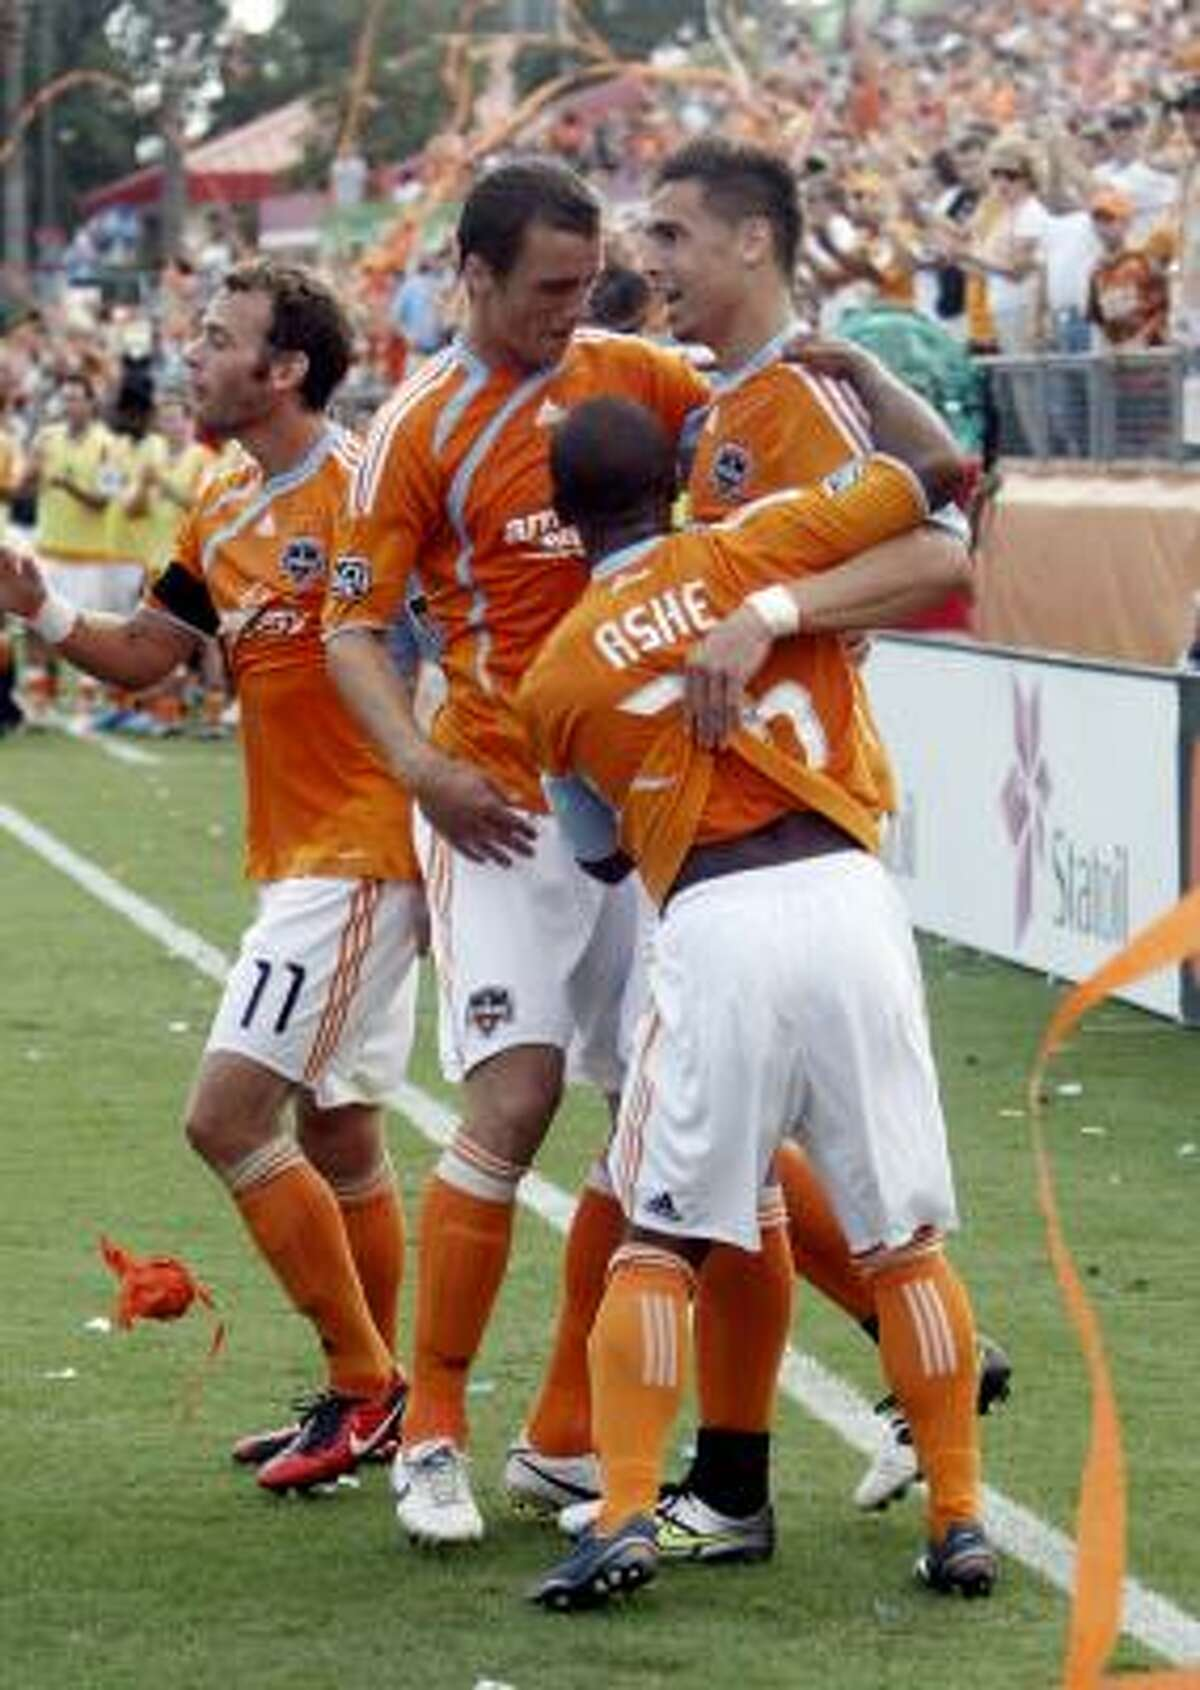 The Dynamo thanked their rabid fans with a 2-1 win.